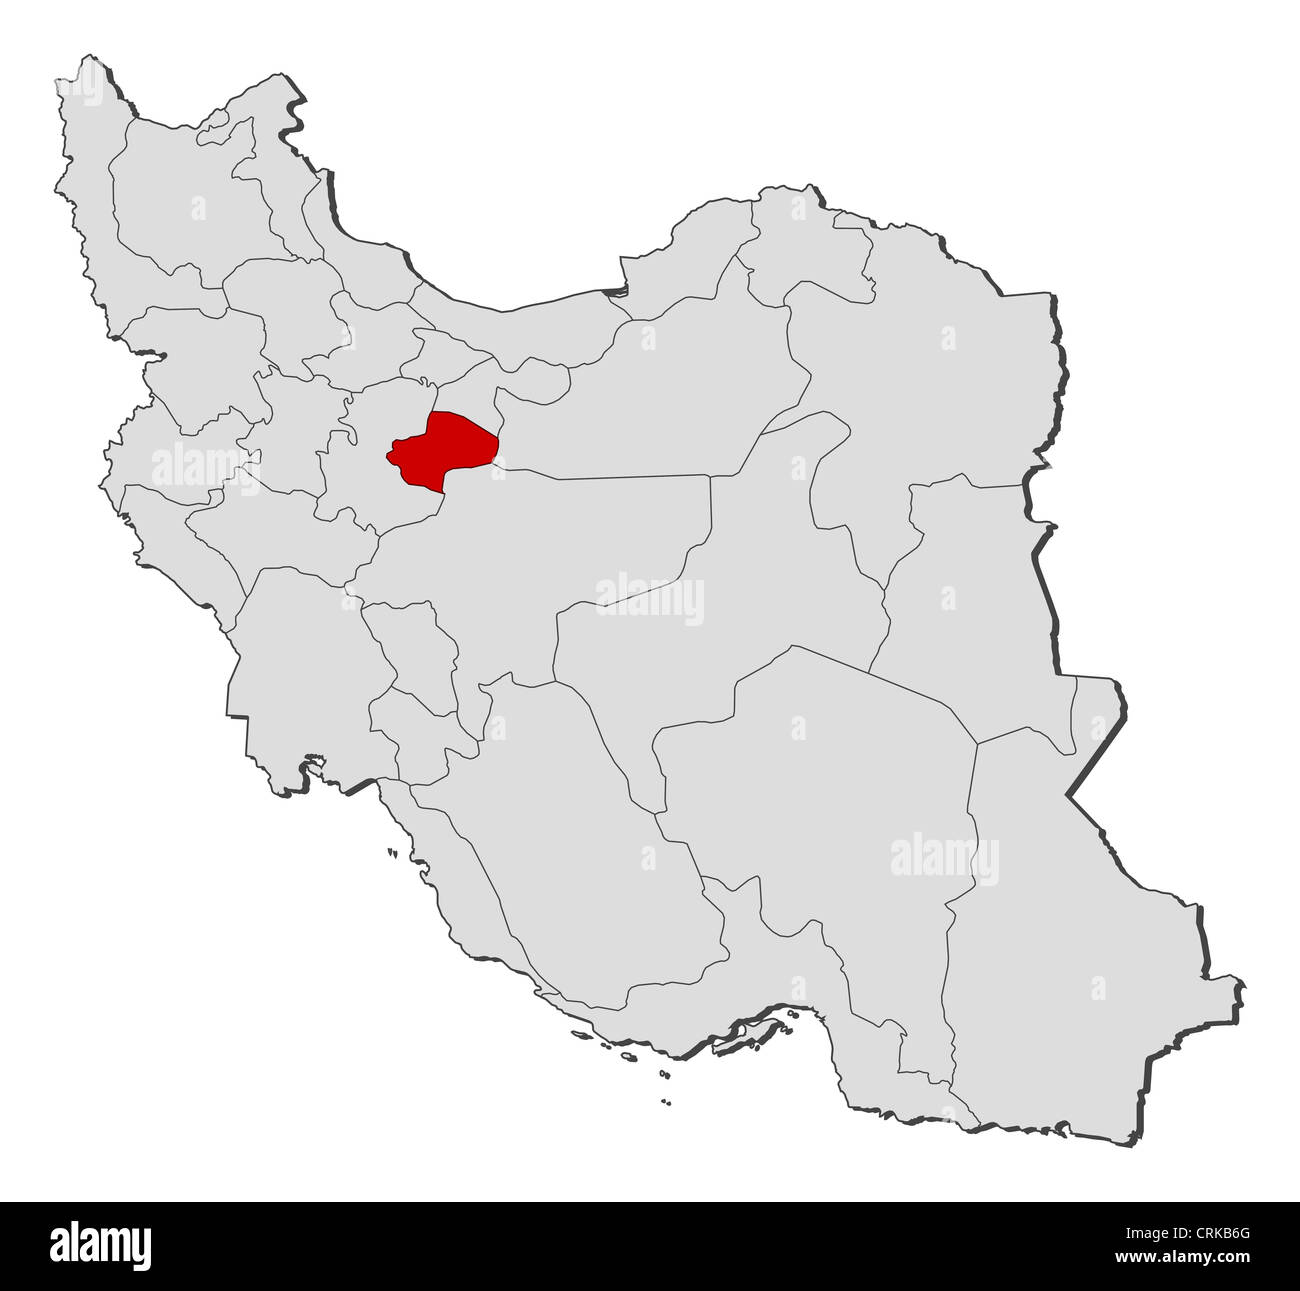 political map of iran with the several provinces where qom is highlighted